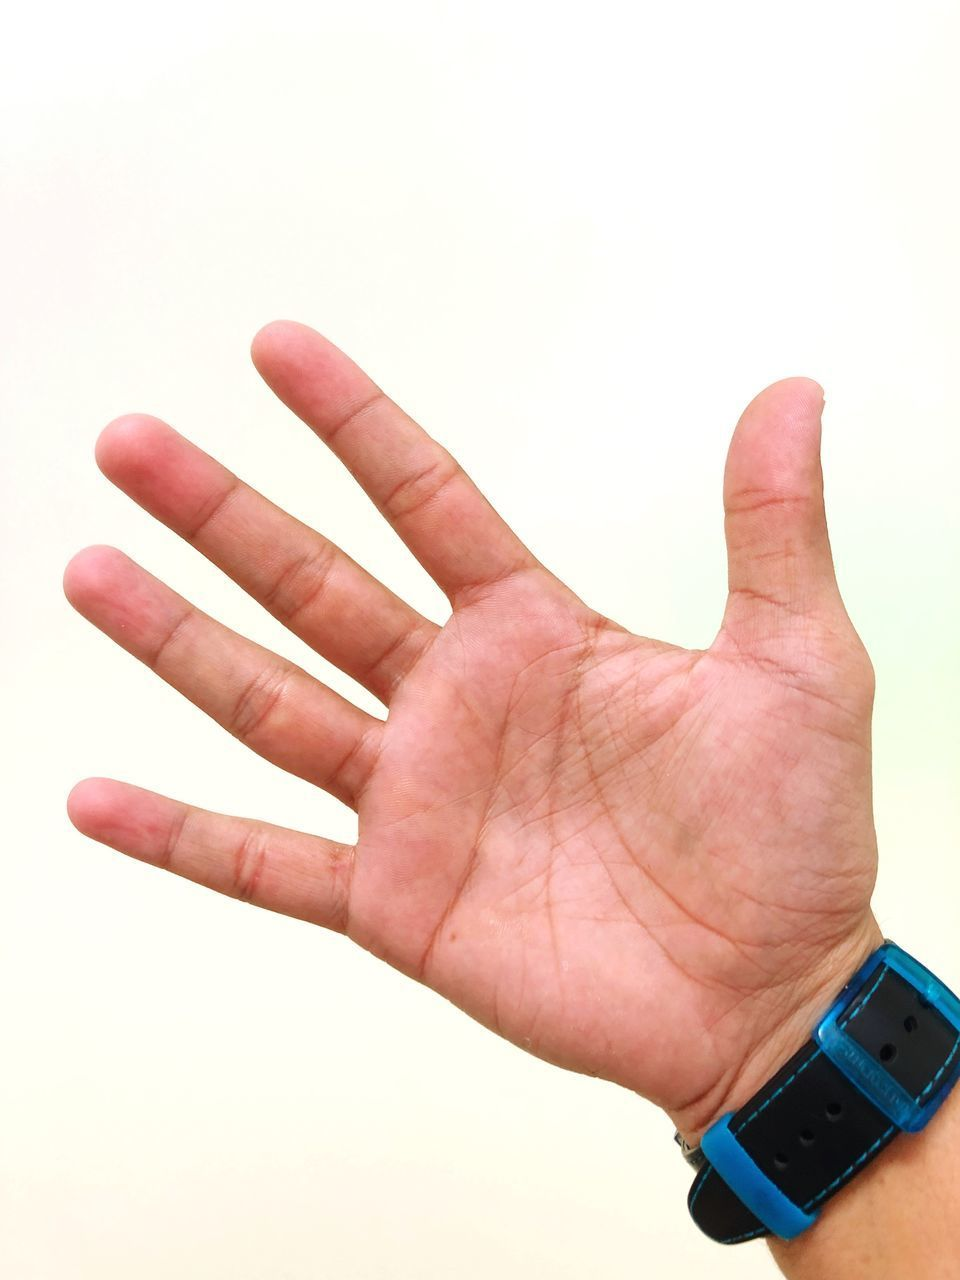 CLOSE-UP OF PERSON HAND AGAINST COLORED BACKGROUND